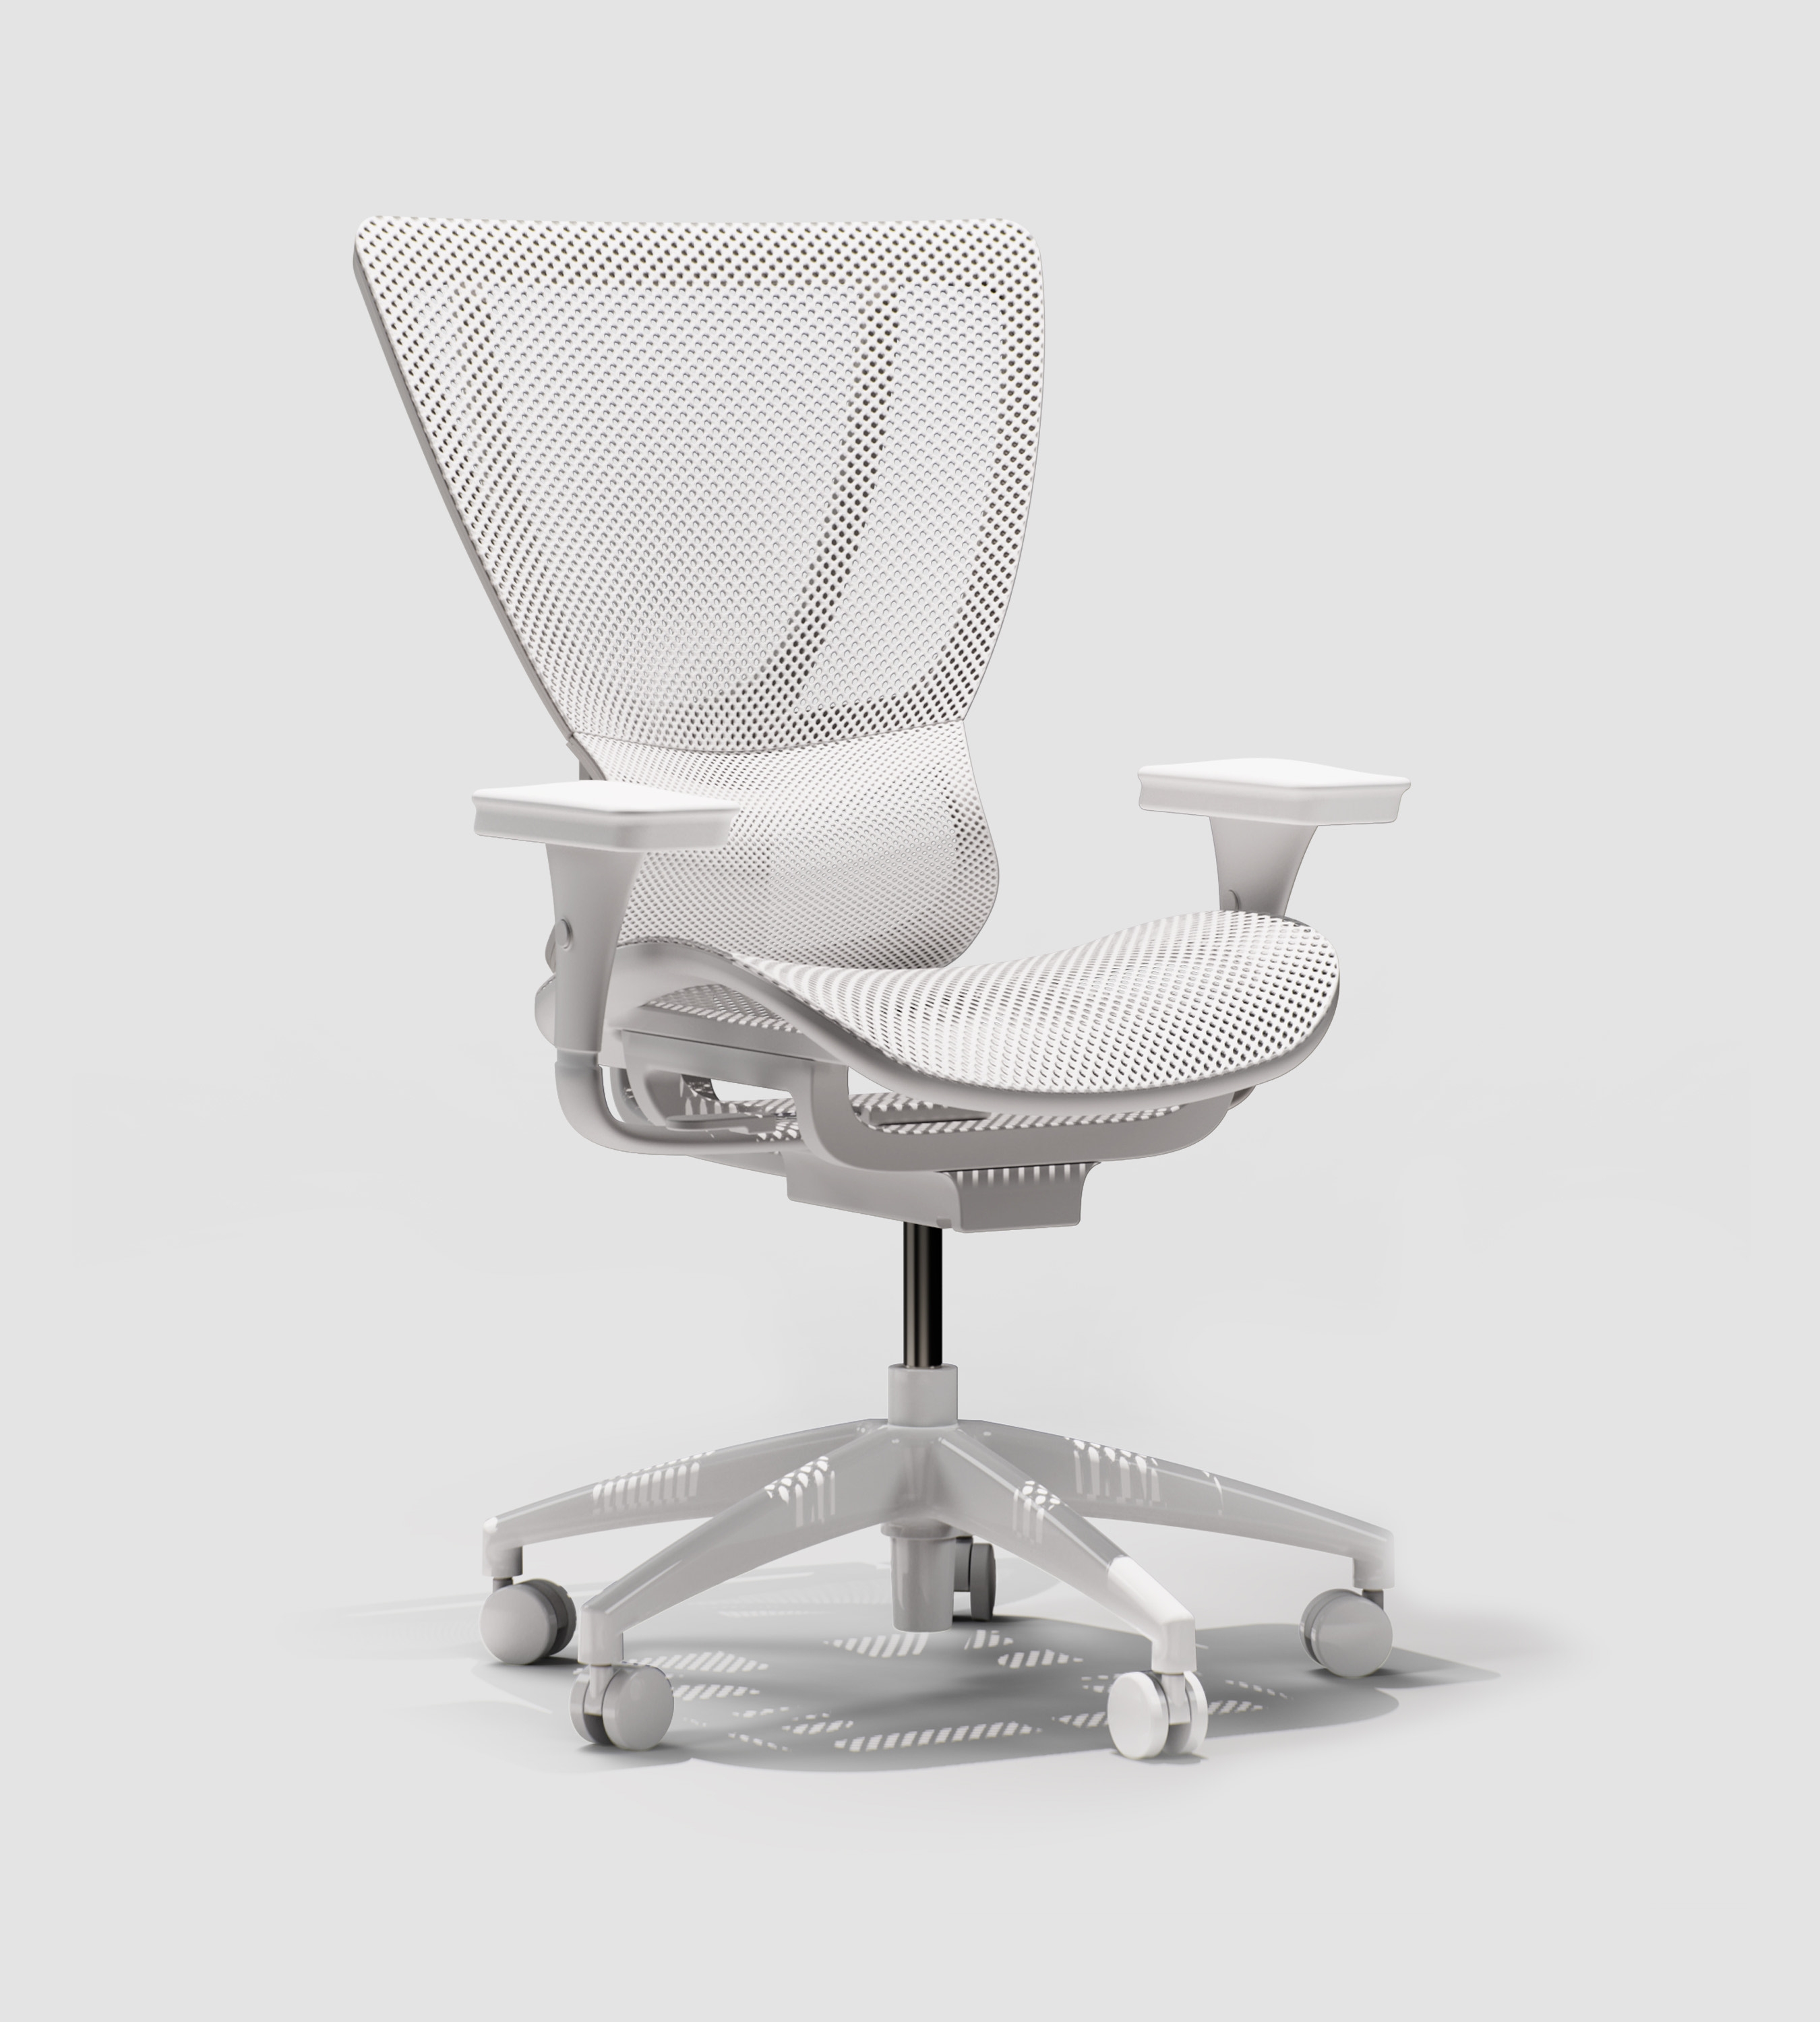 3D CGI Render of a white chair on a white background by Sprout Viz